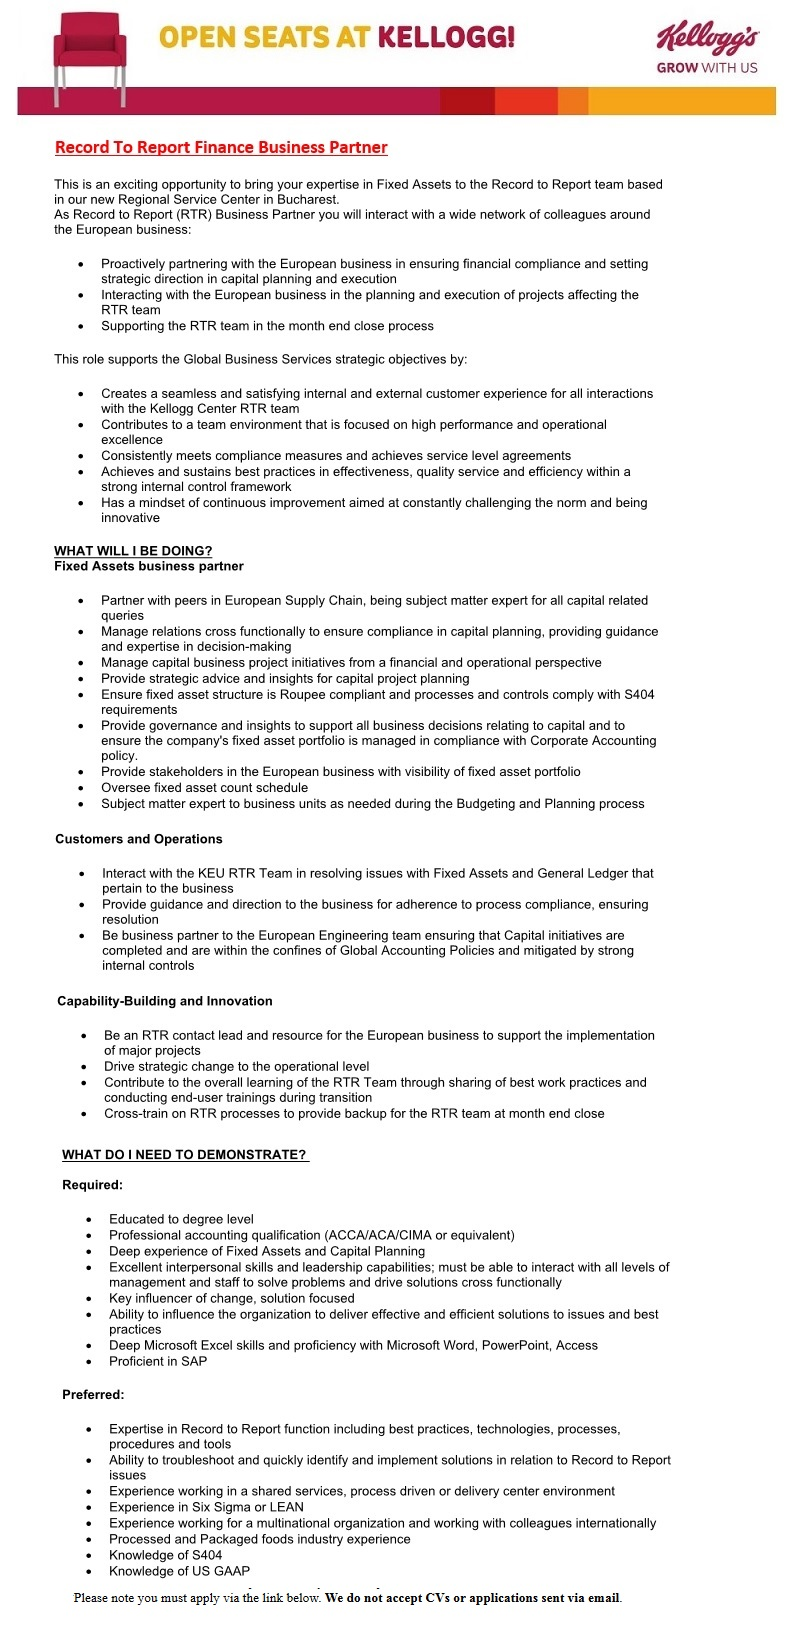 Record To Report Finance Business Partner - directly employed by